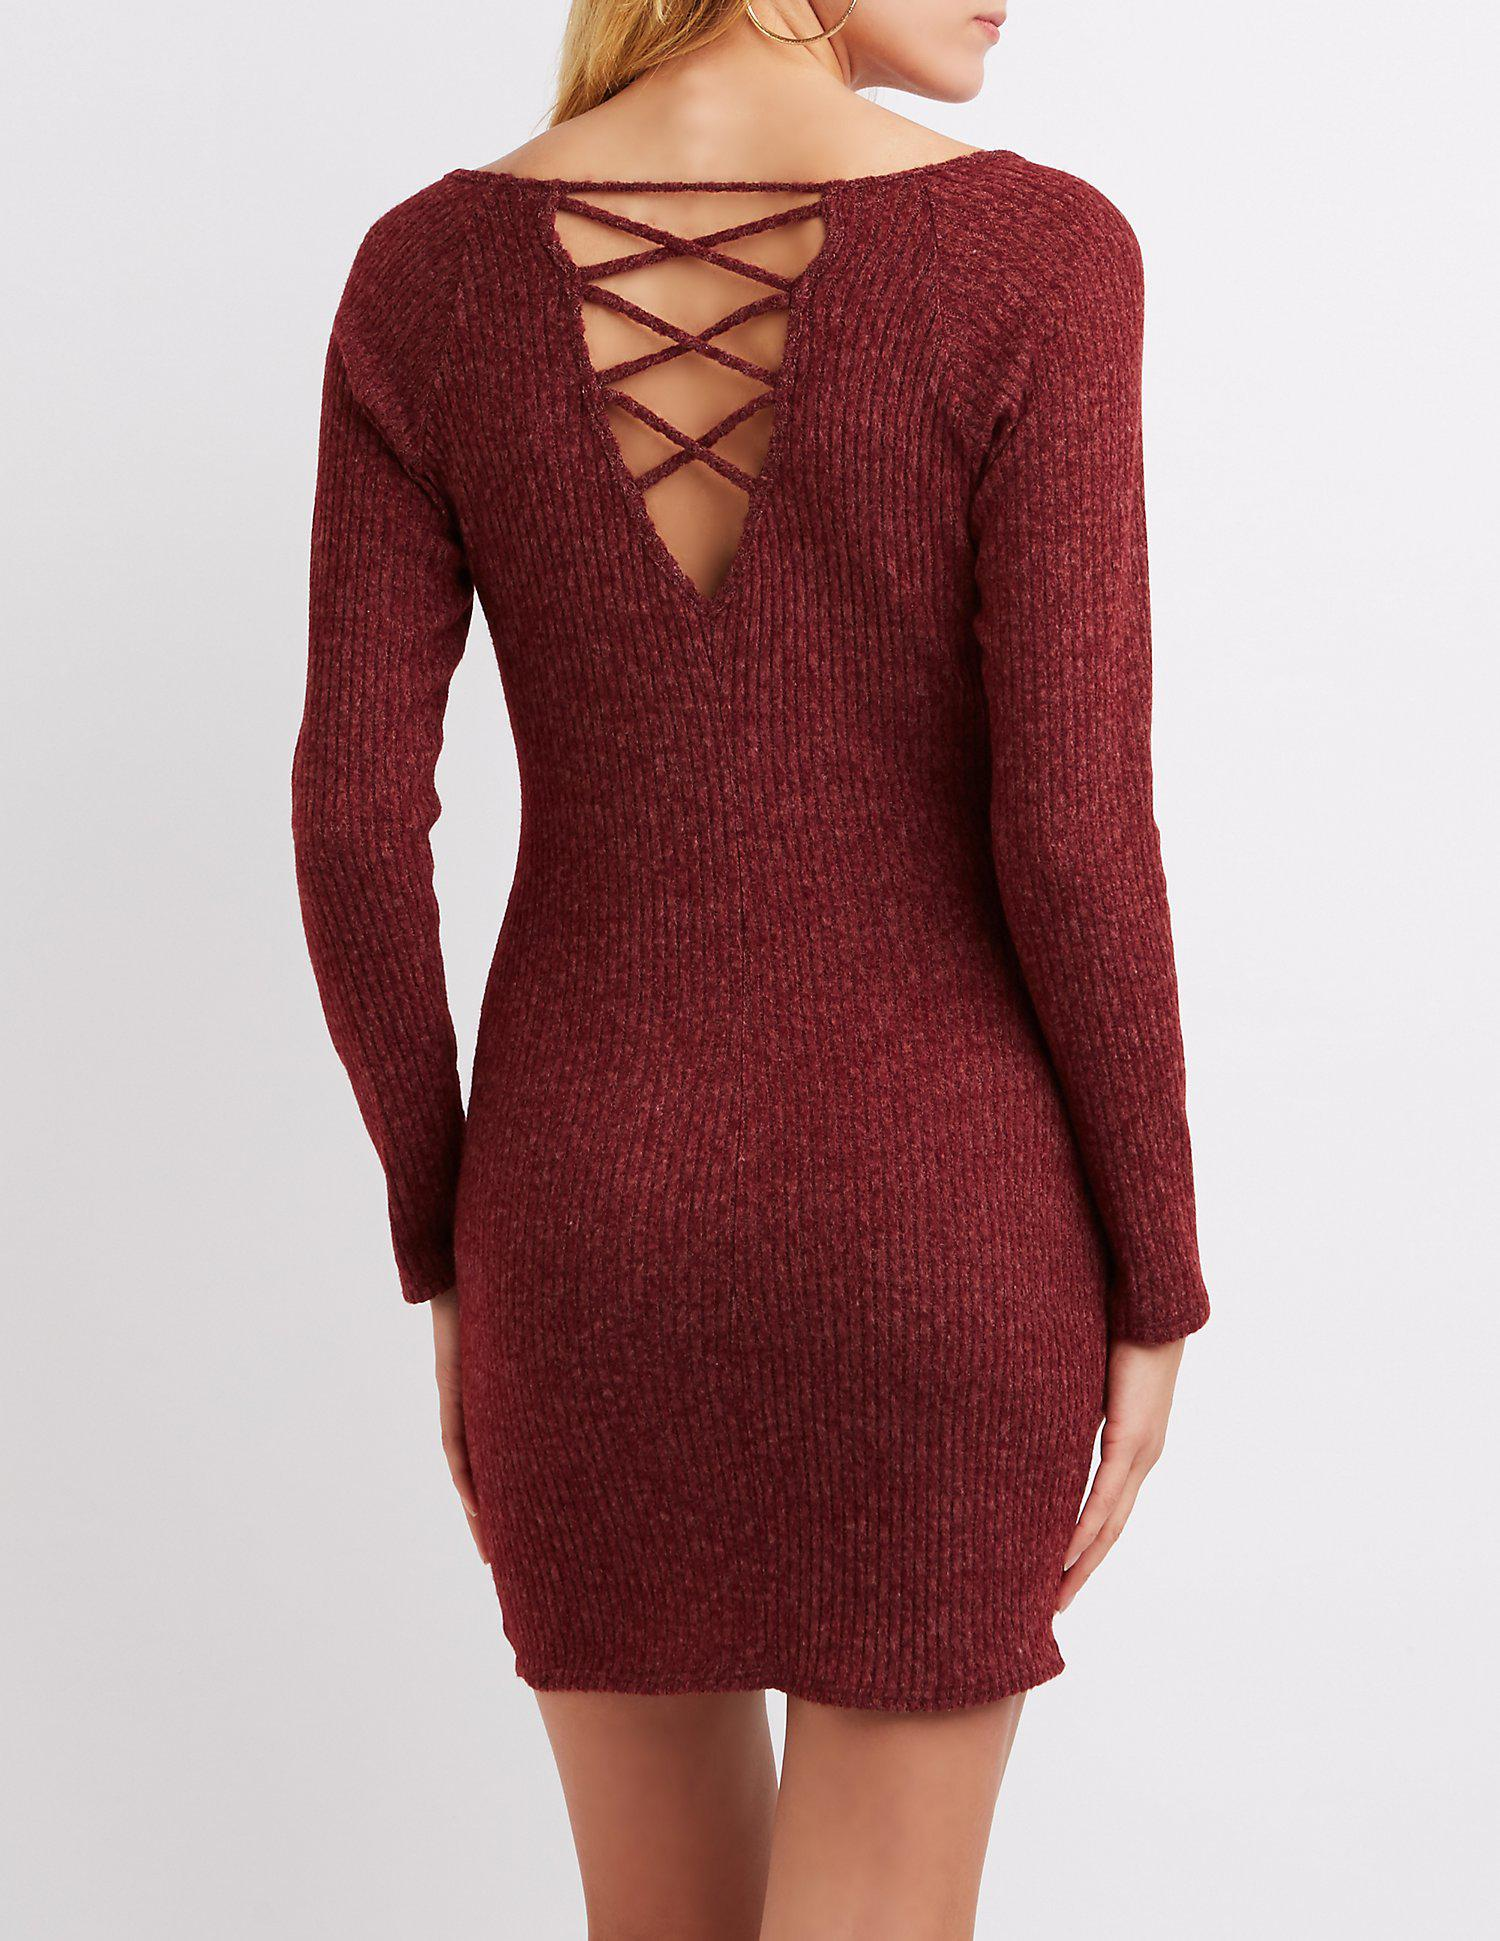 9e2157dbcefd Lyst - Charlotte Russe Ribbed Lattice-back Bodycon Dress in Red